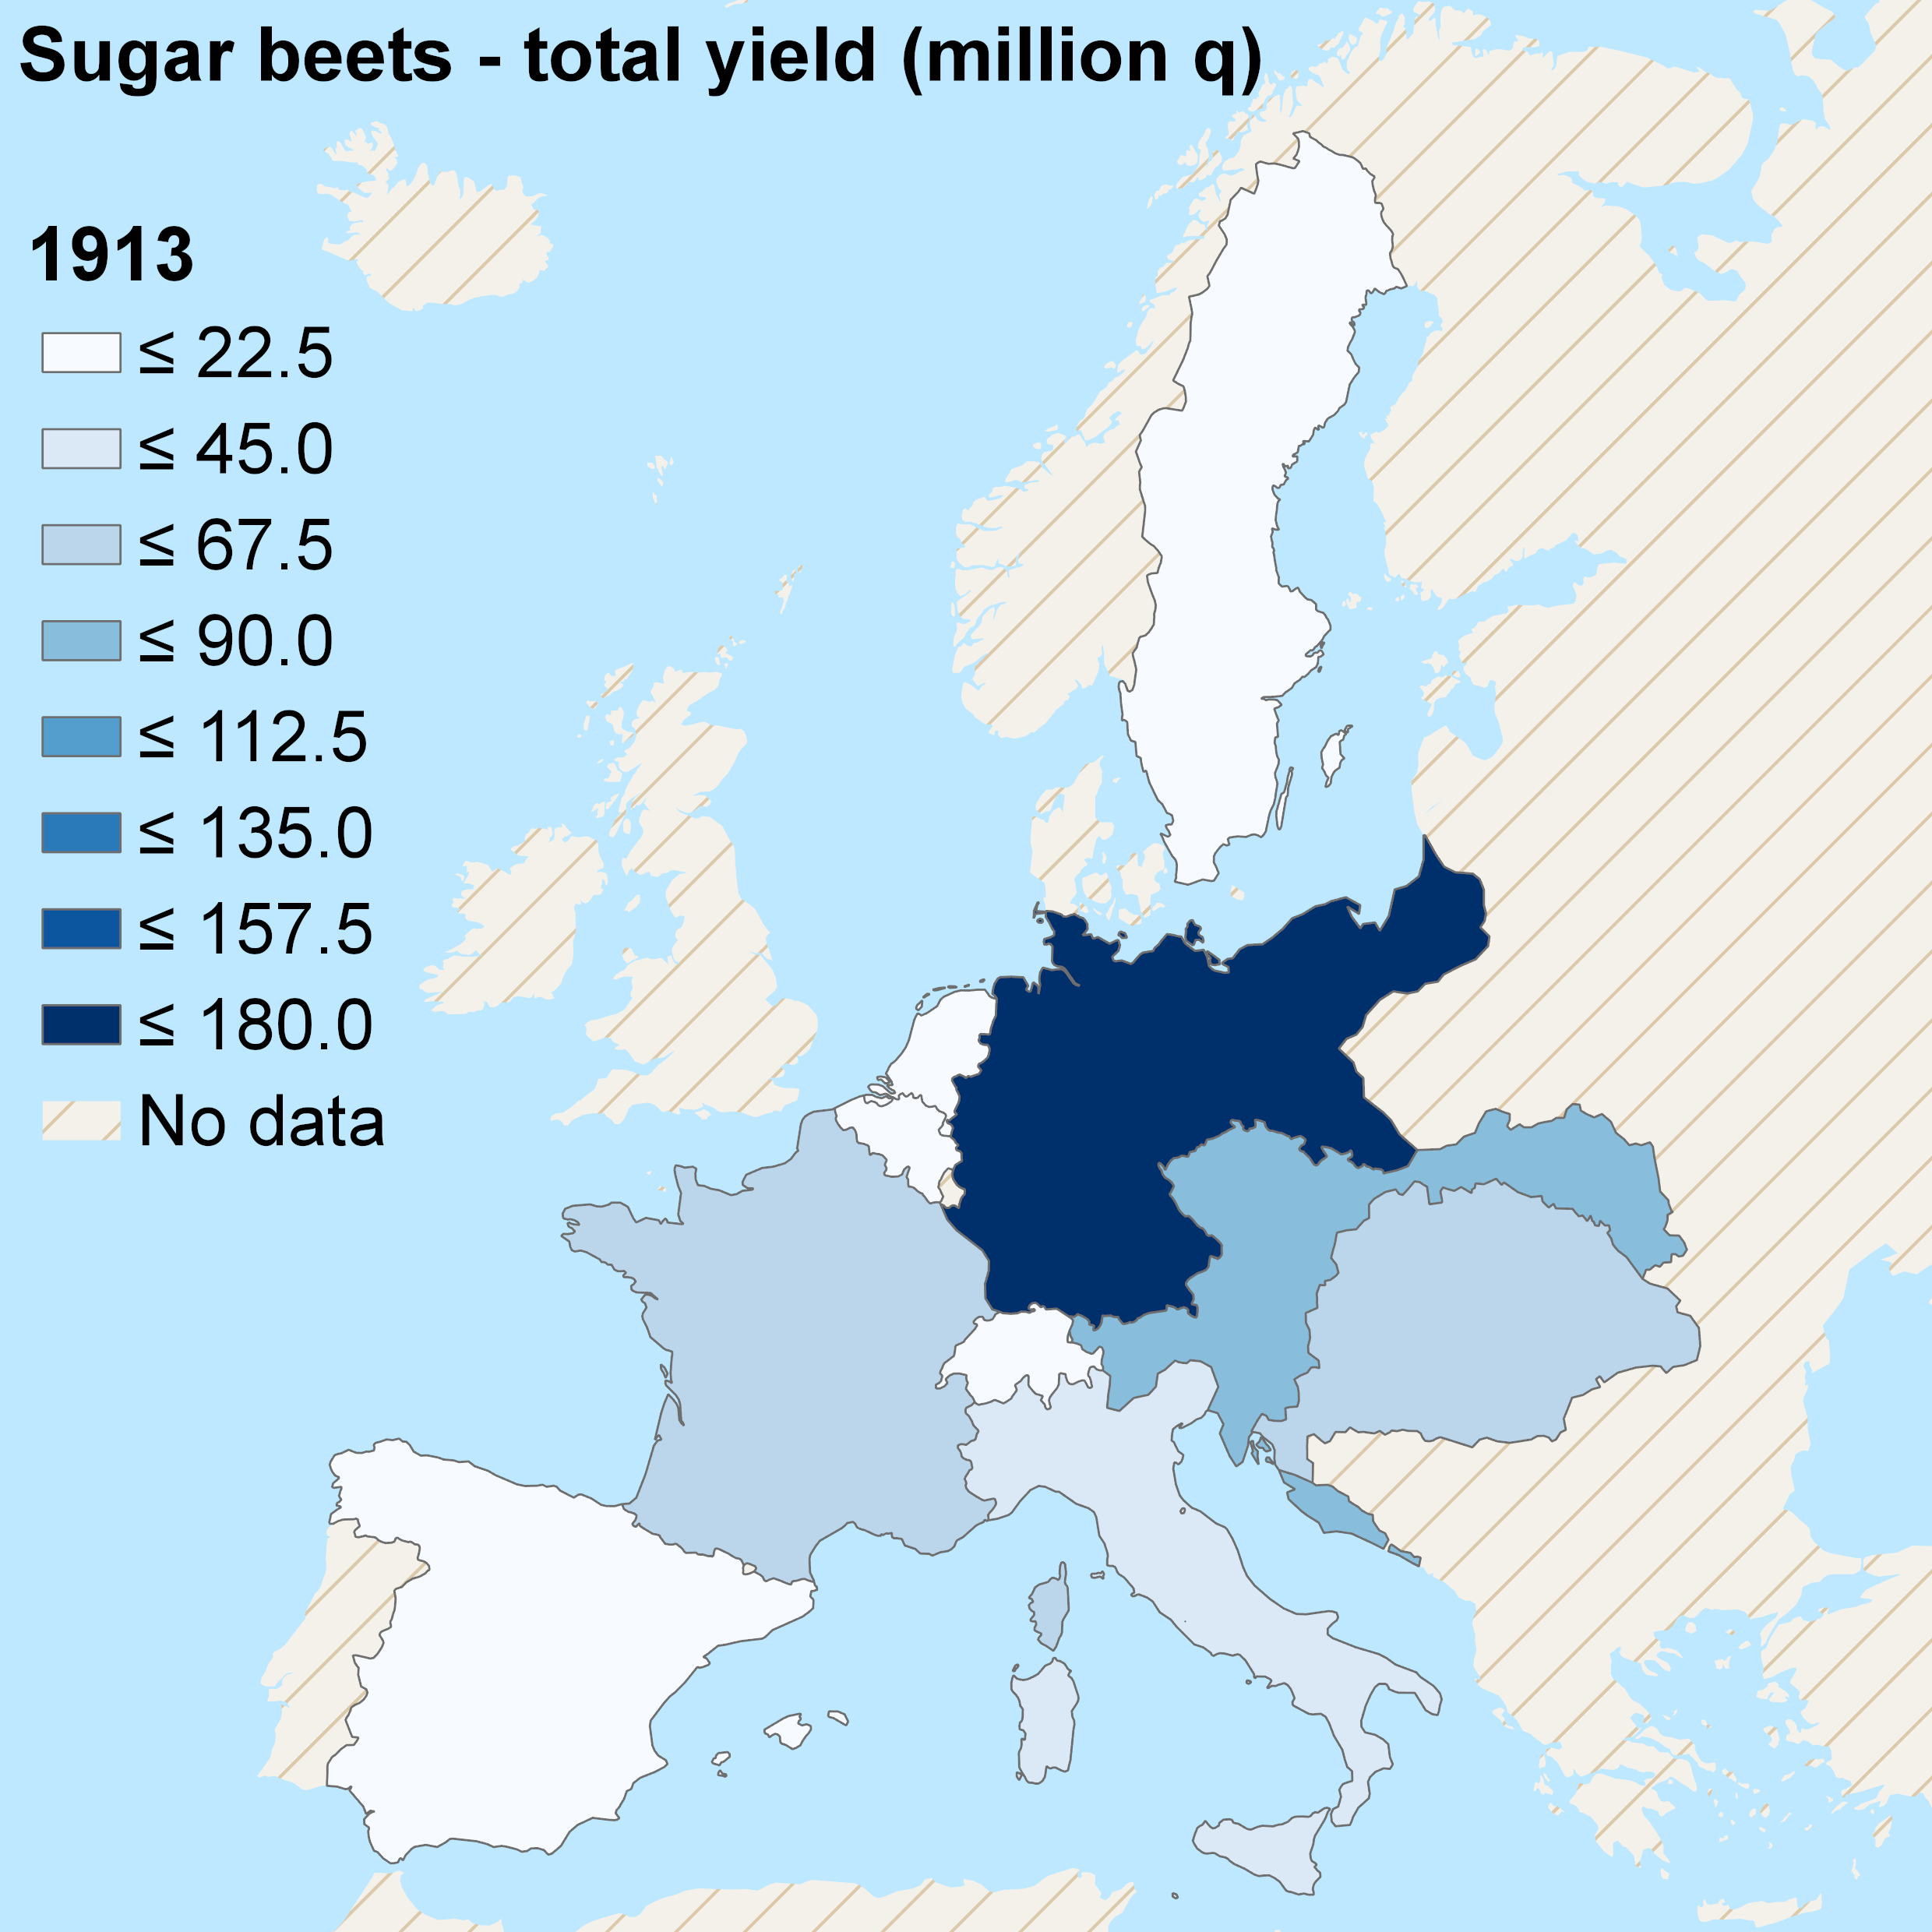 sugarbeets-total-1913